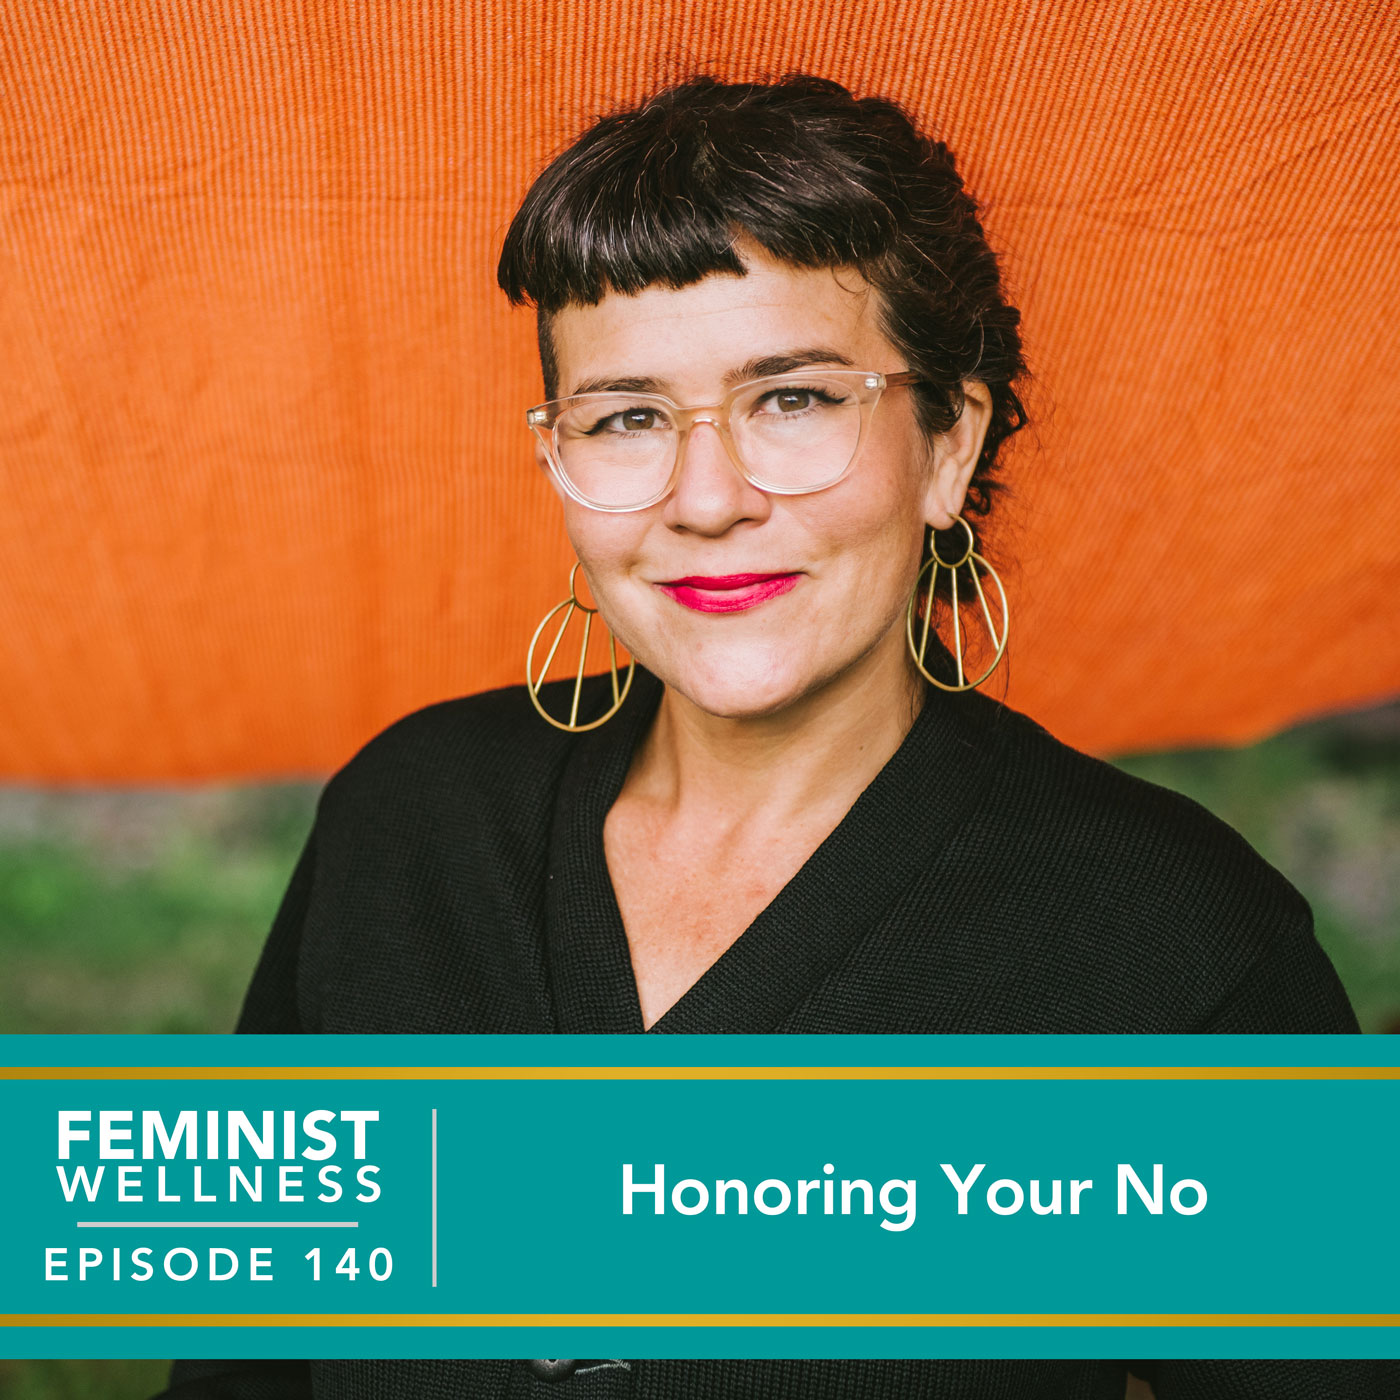 Feminist Wellness with Victoria Albina | Honoring Your No